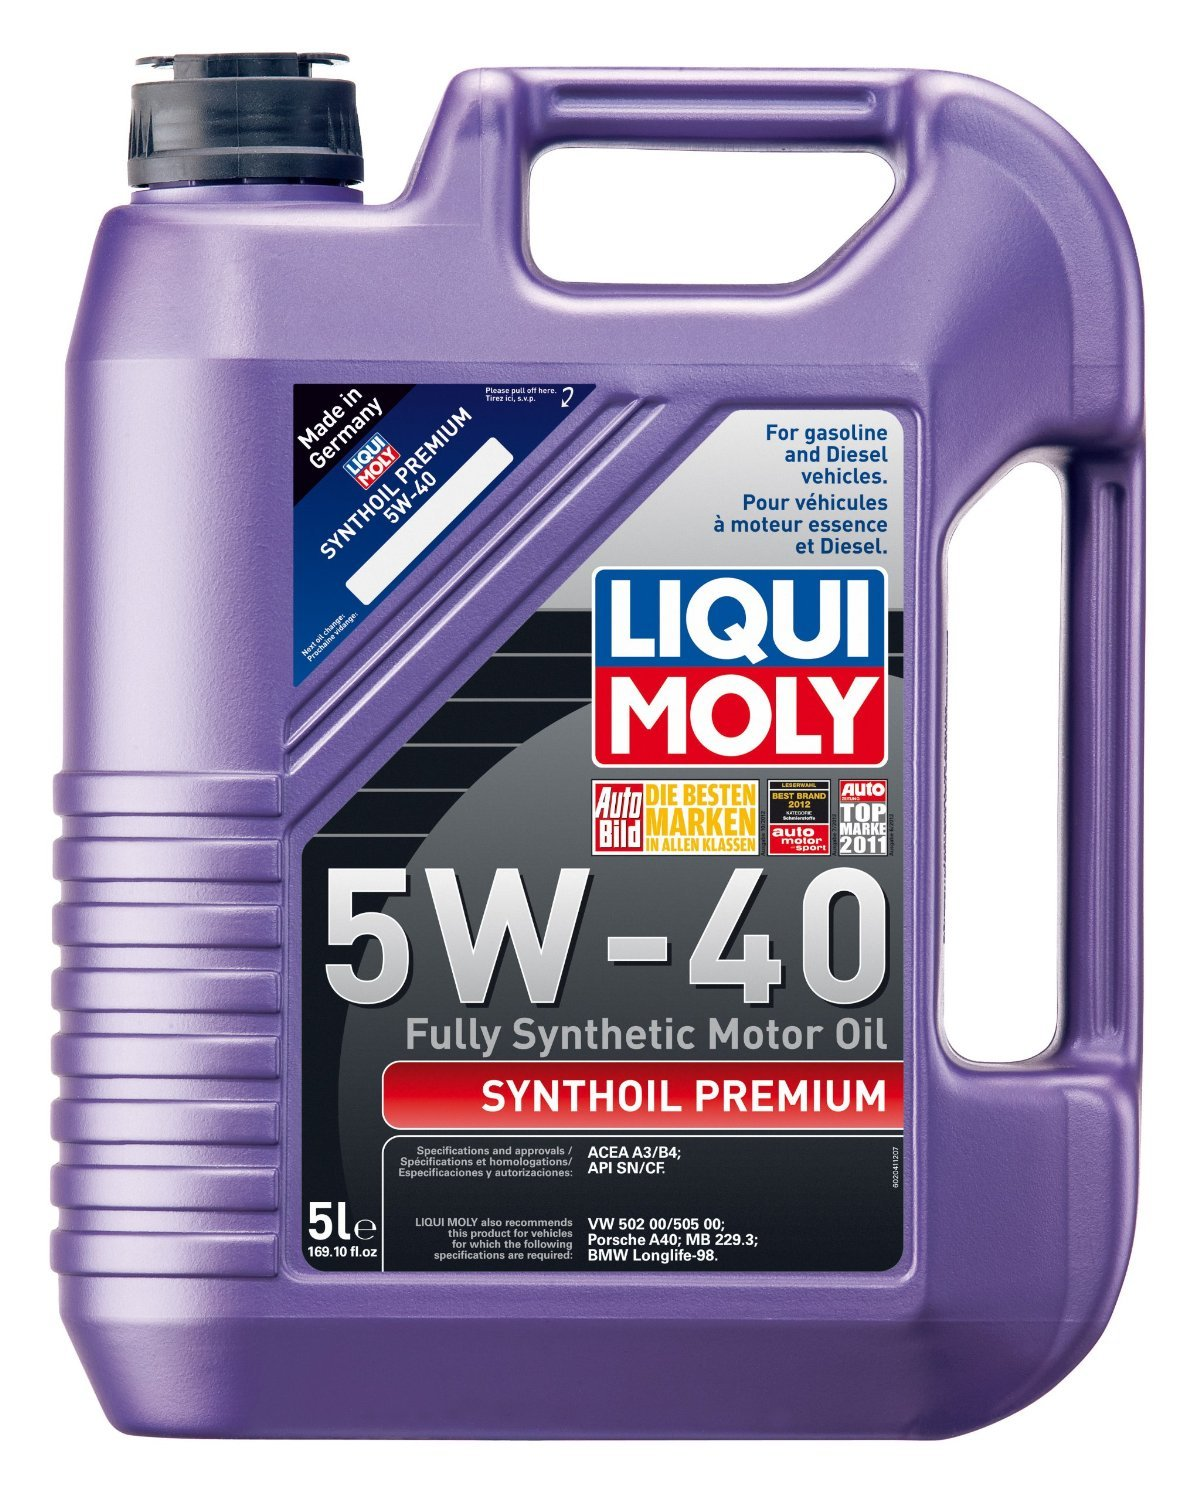 Liqui Moly (2041-4PK) Premium 5W-40 Synthetic Motor Oil - 5 Liter, (Pack of 4) by Liqui Moly